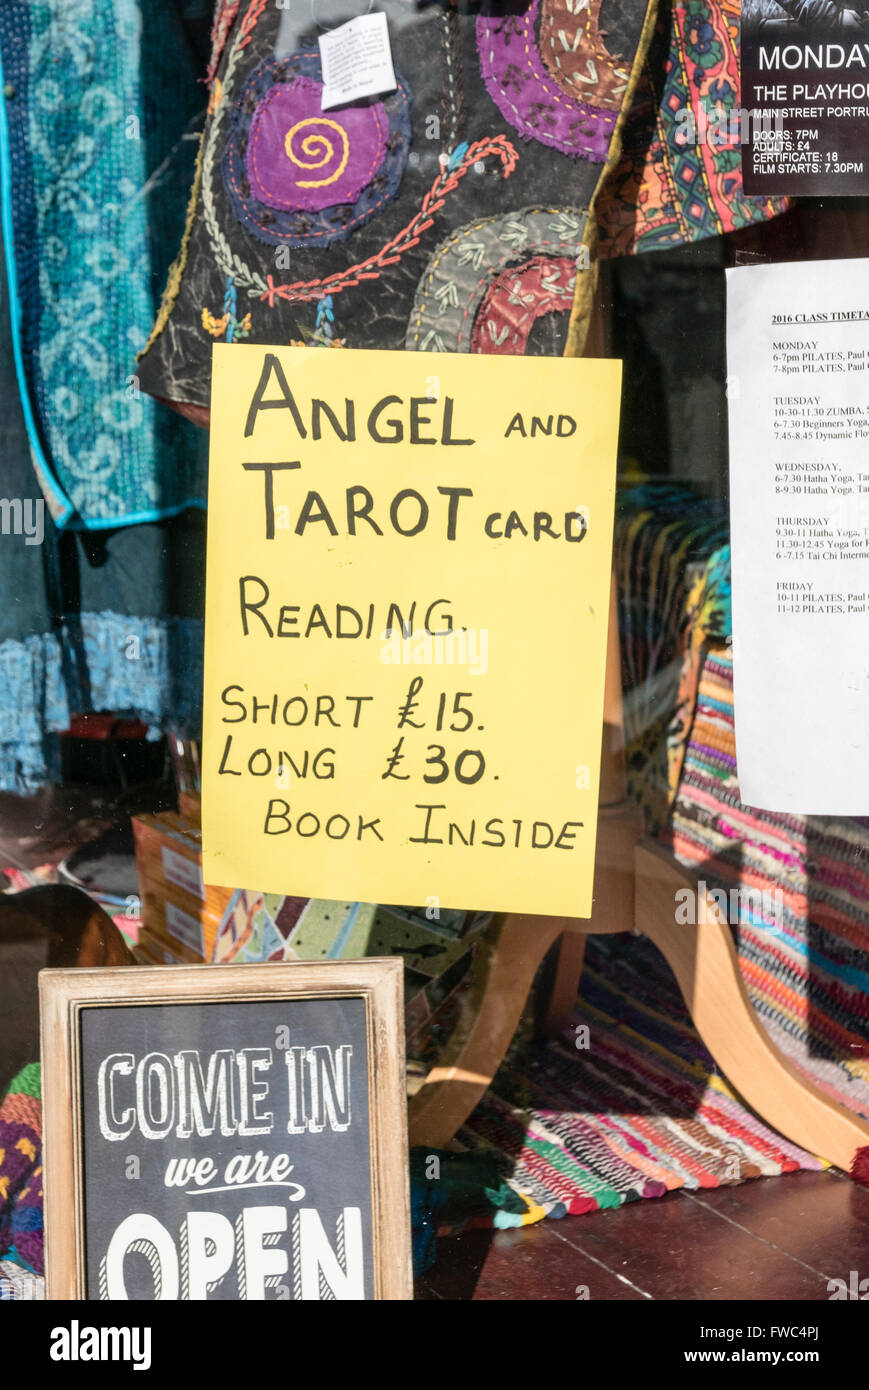 Sign advertising Angel and Tarot card readings in the window of a